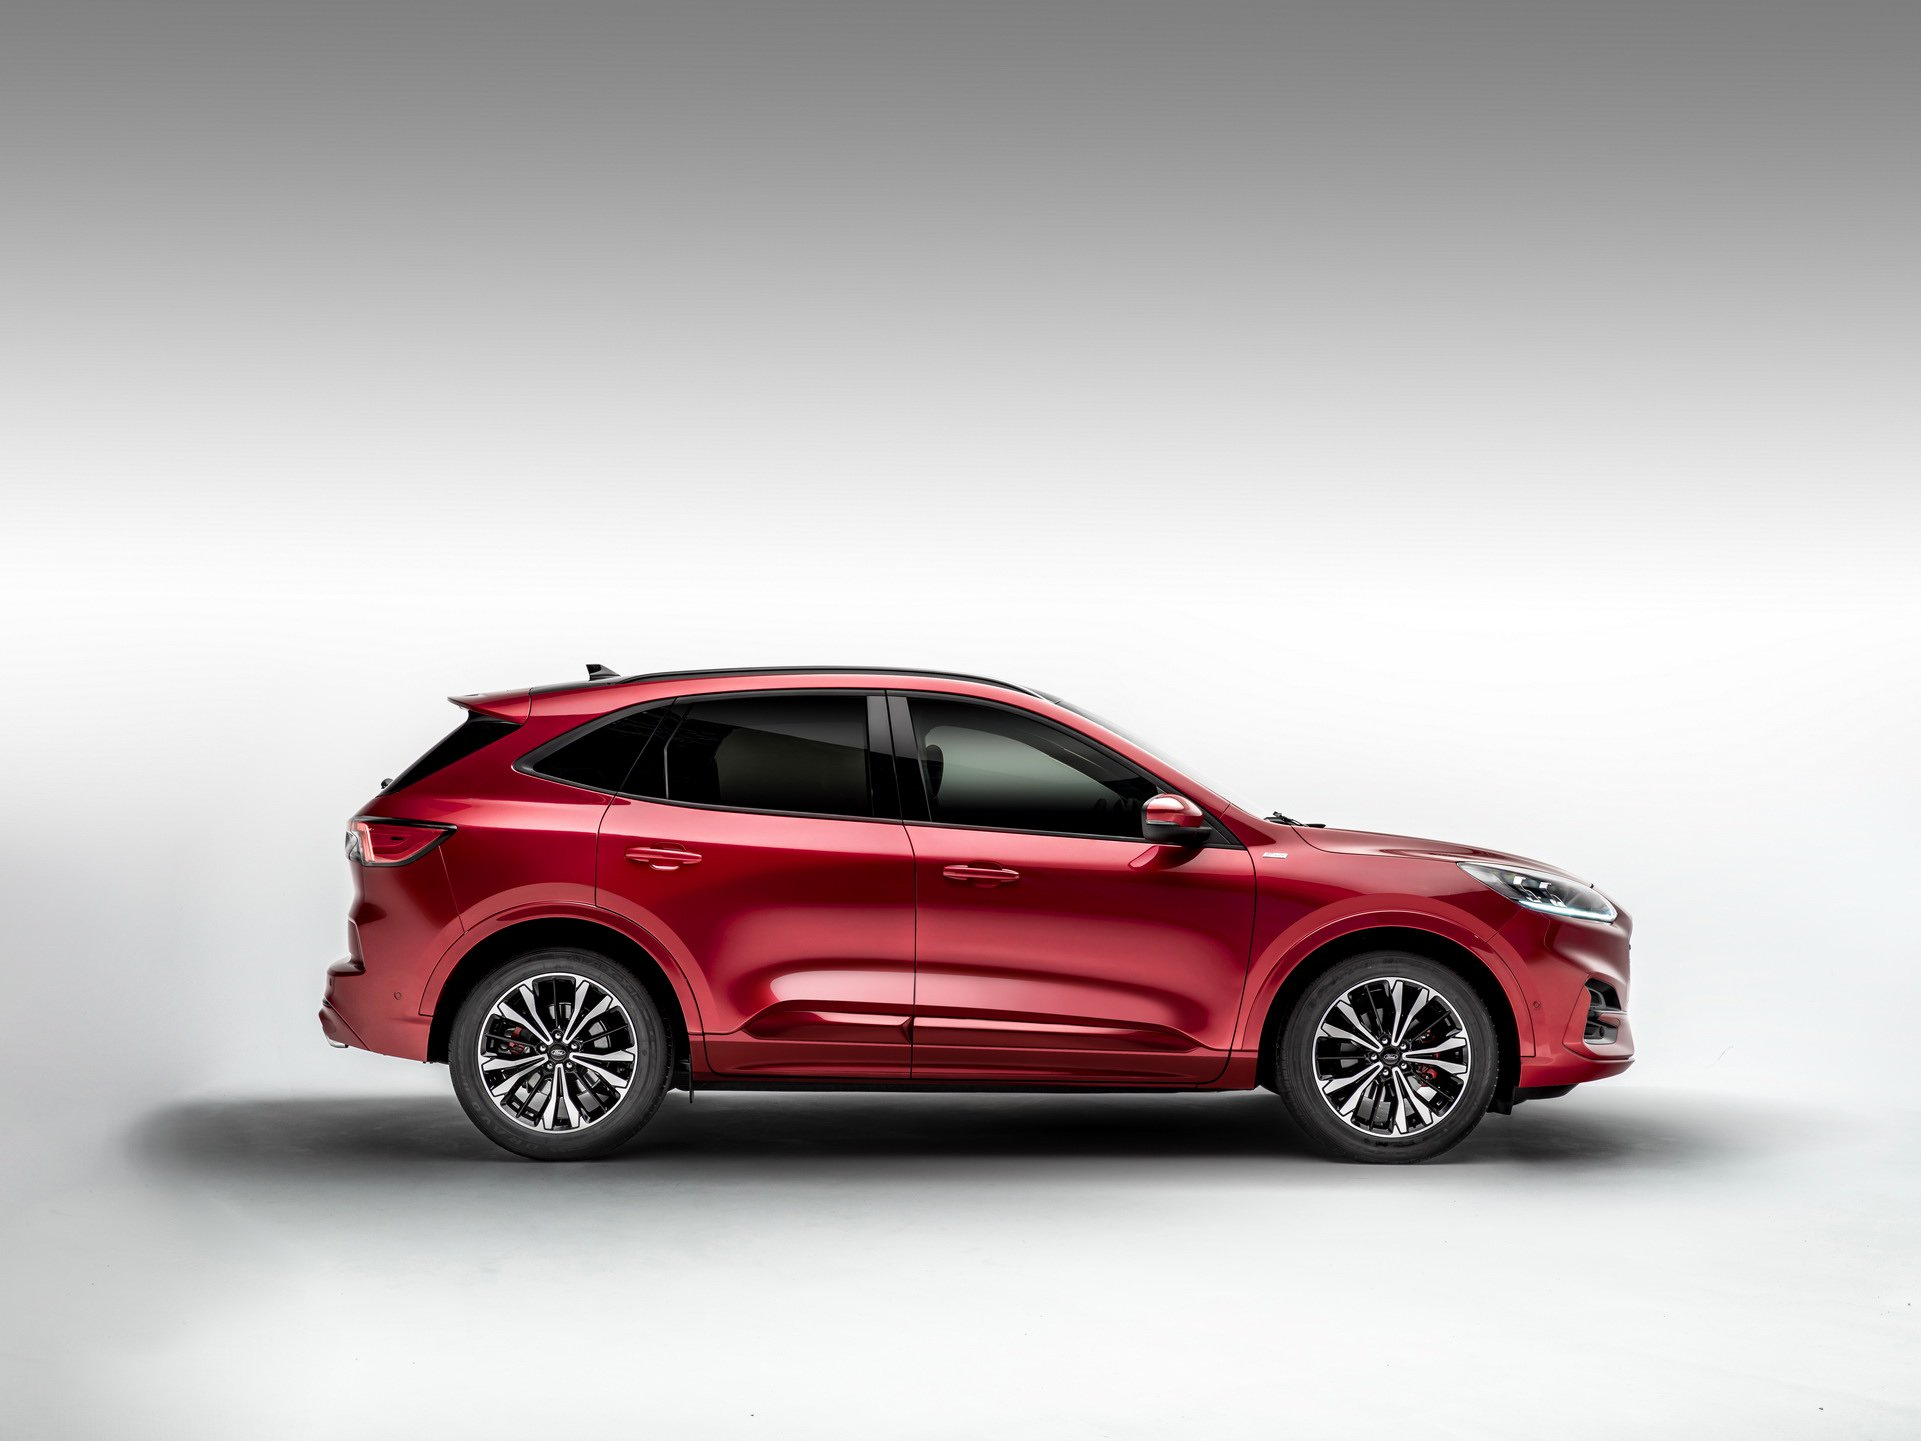 larger-lighter-2020-ford-kuga-debuts-with-three-hybrid-engines_19.jpg